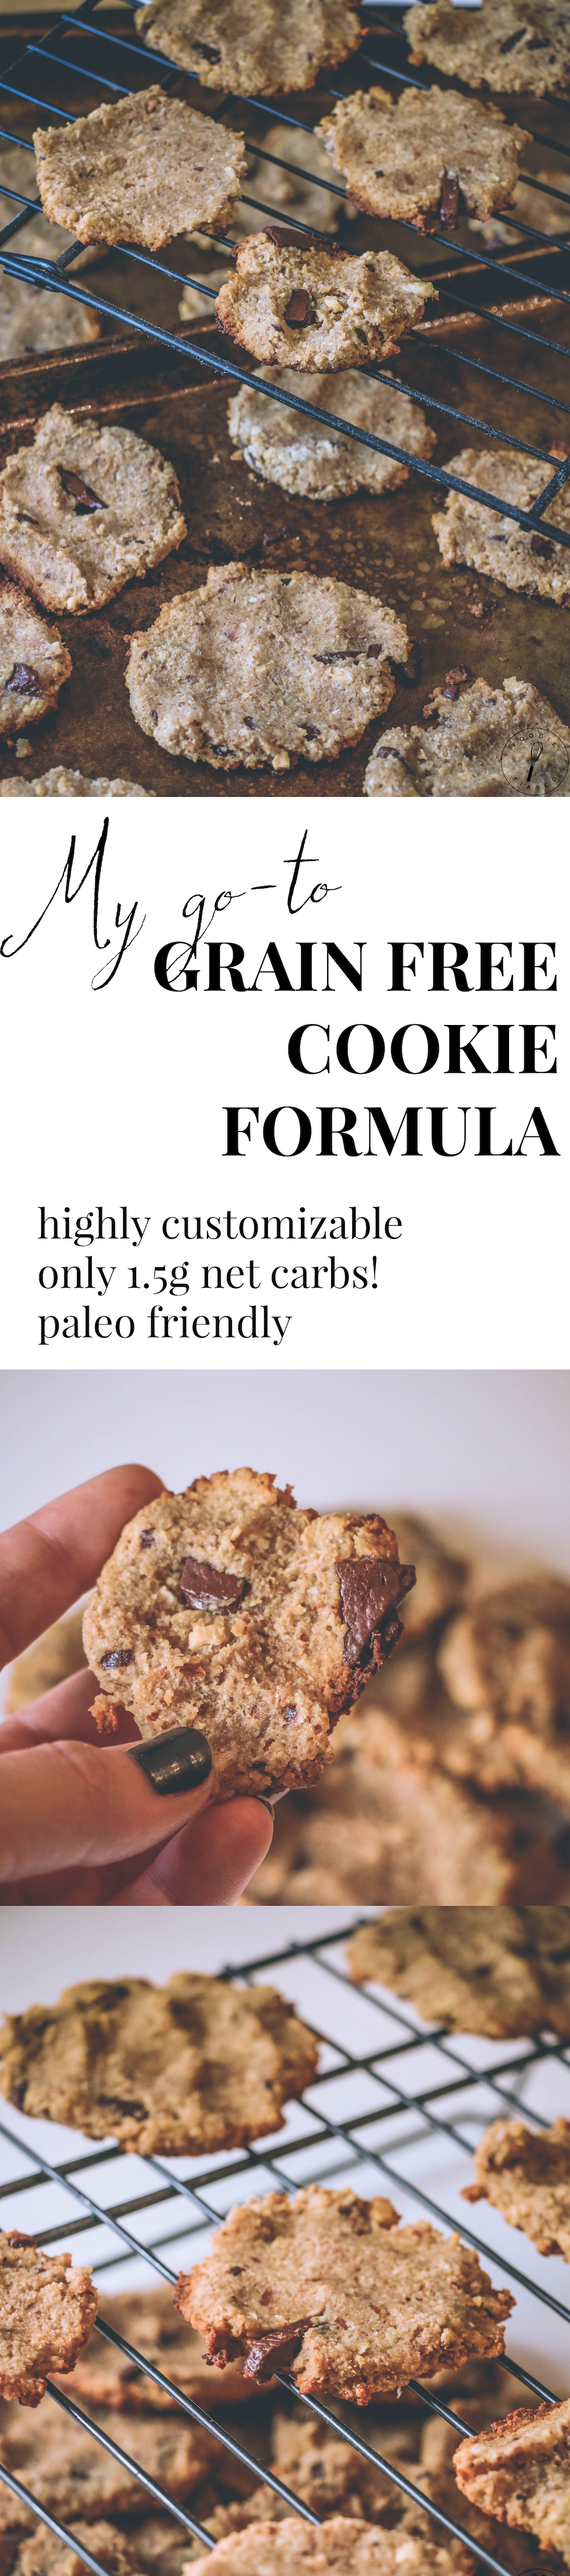 Cookie Pinterest